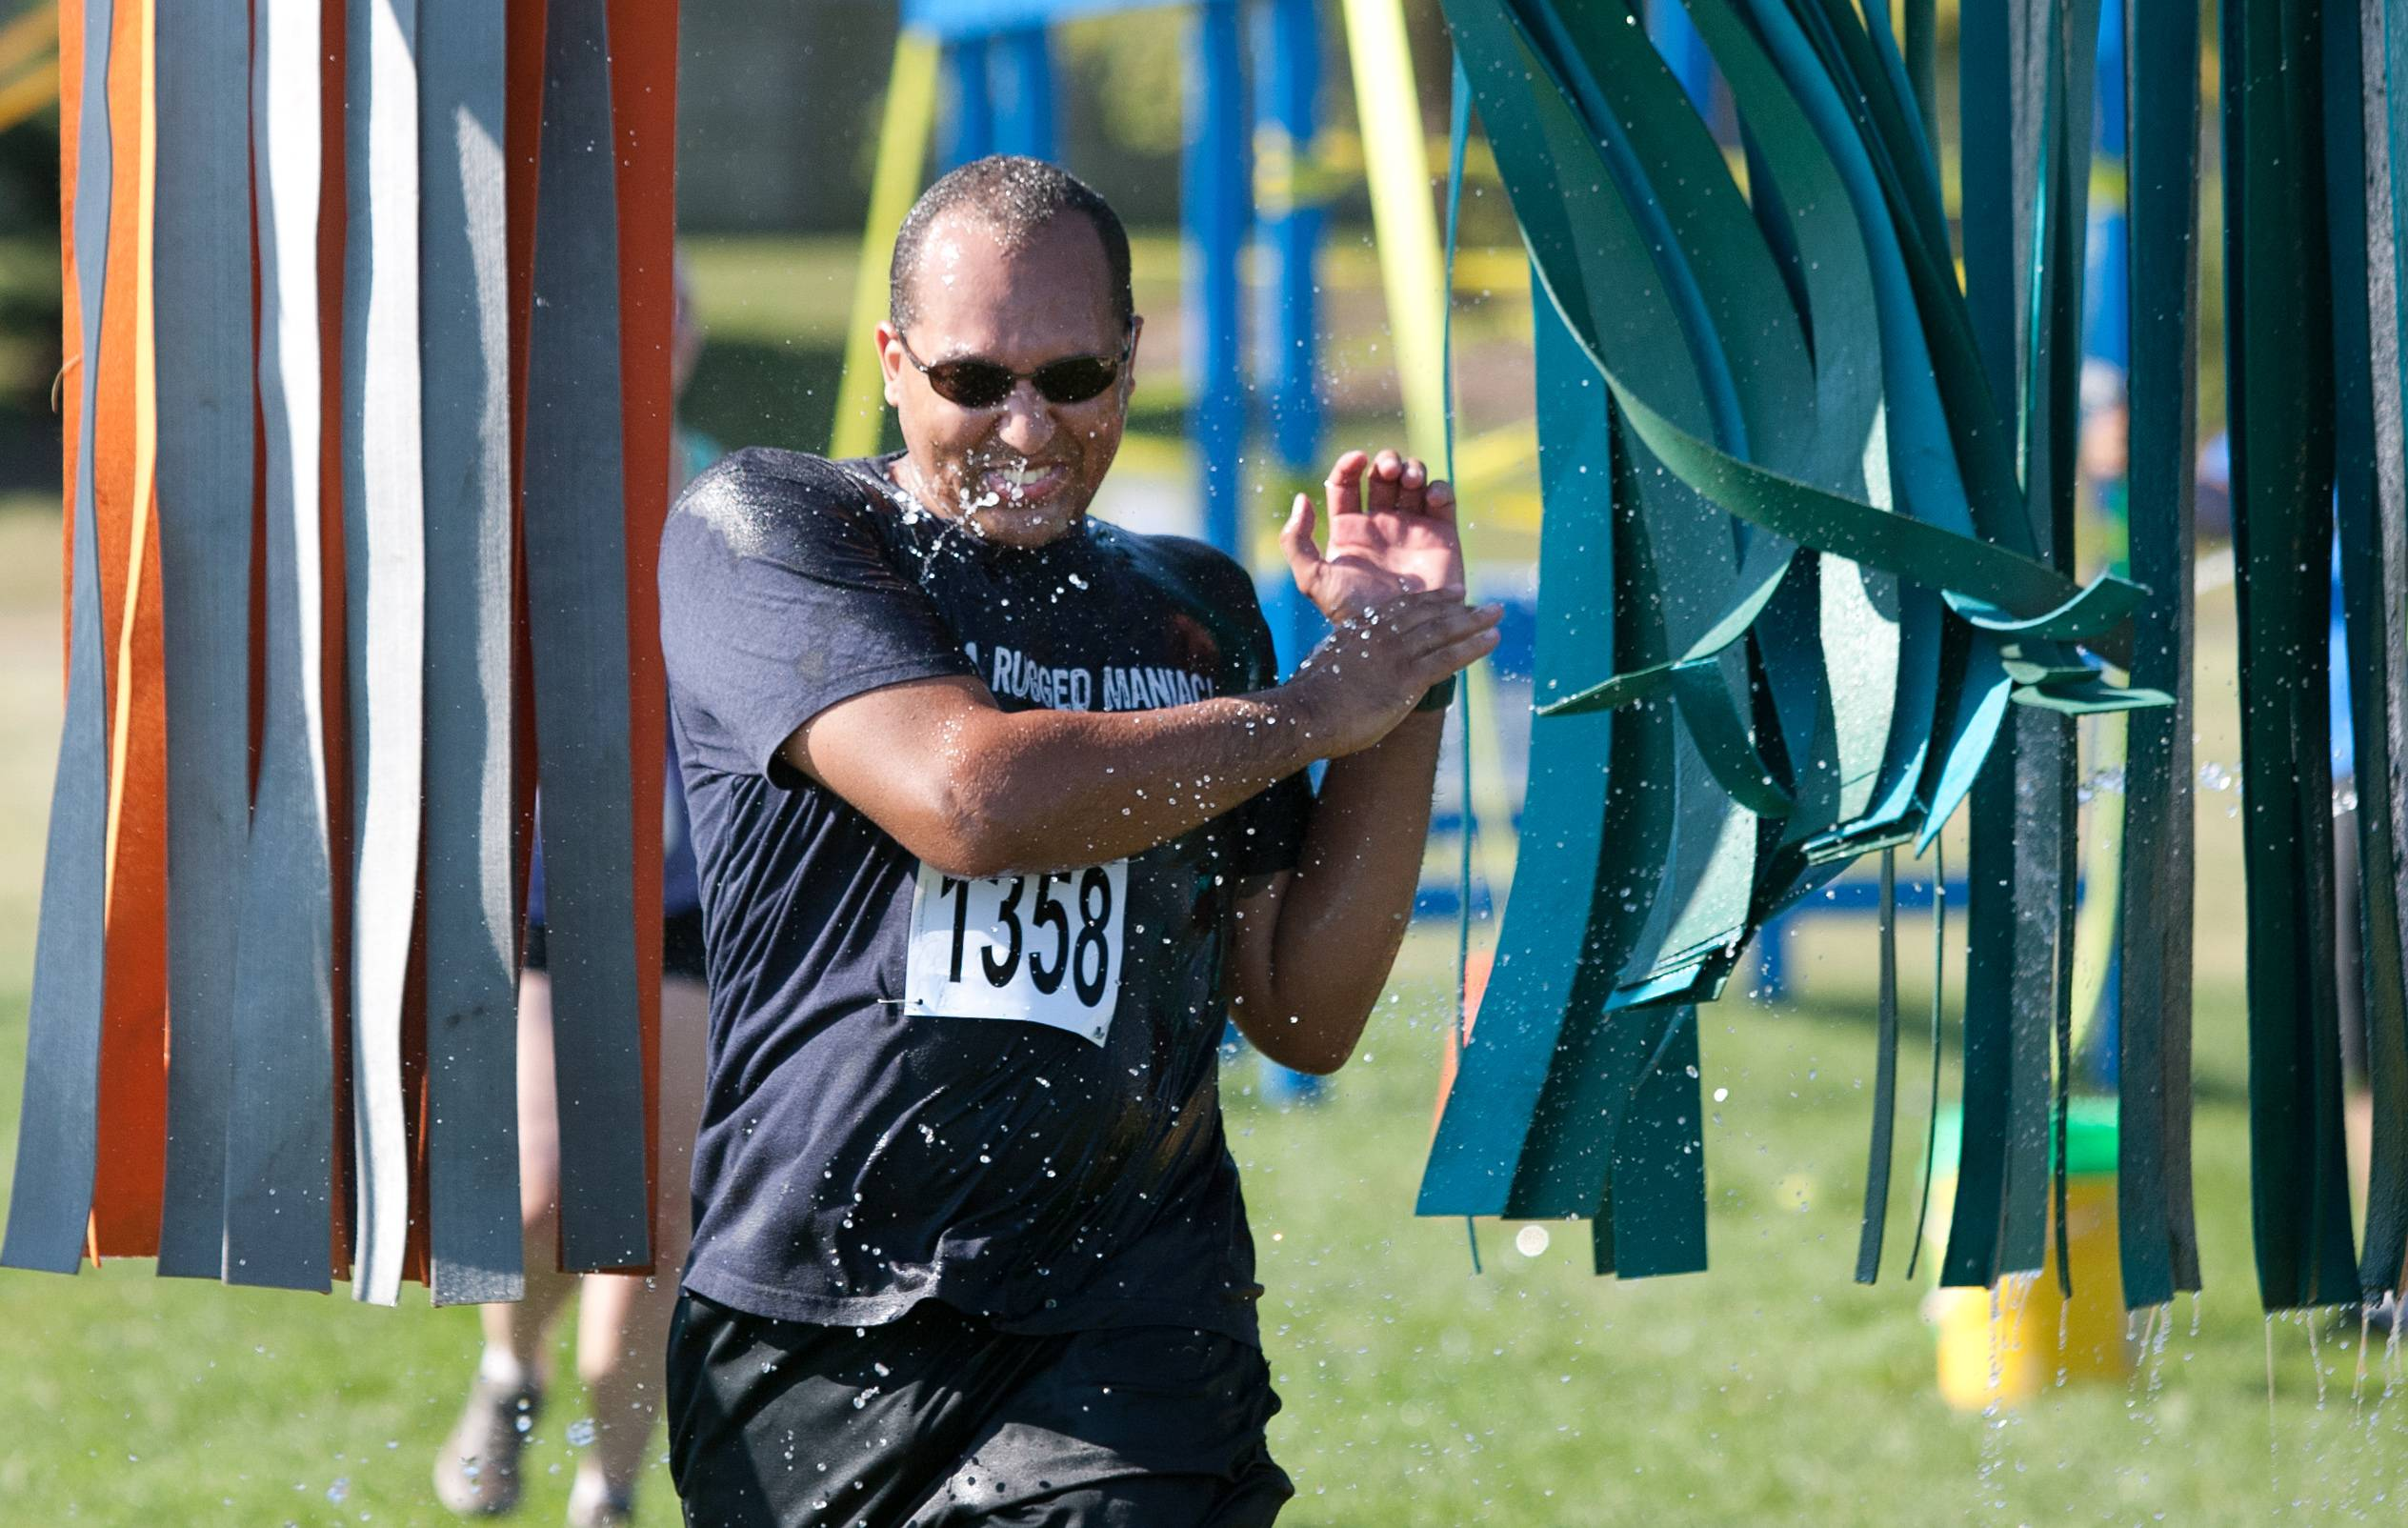 Jason Williams of Palatine runs through the car wash portion of the second annual Varsity Rush obstacle race Saturday at Frontier Park in Naperville.